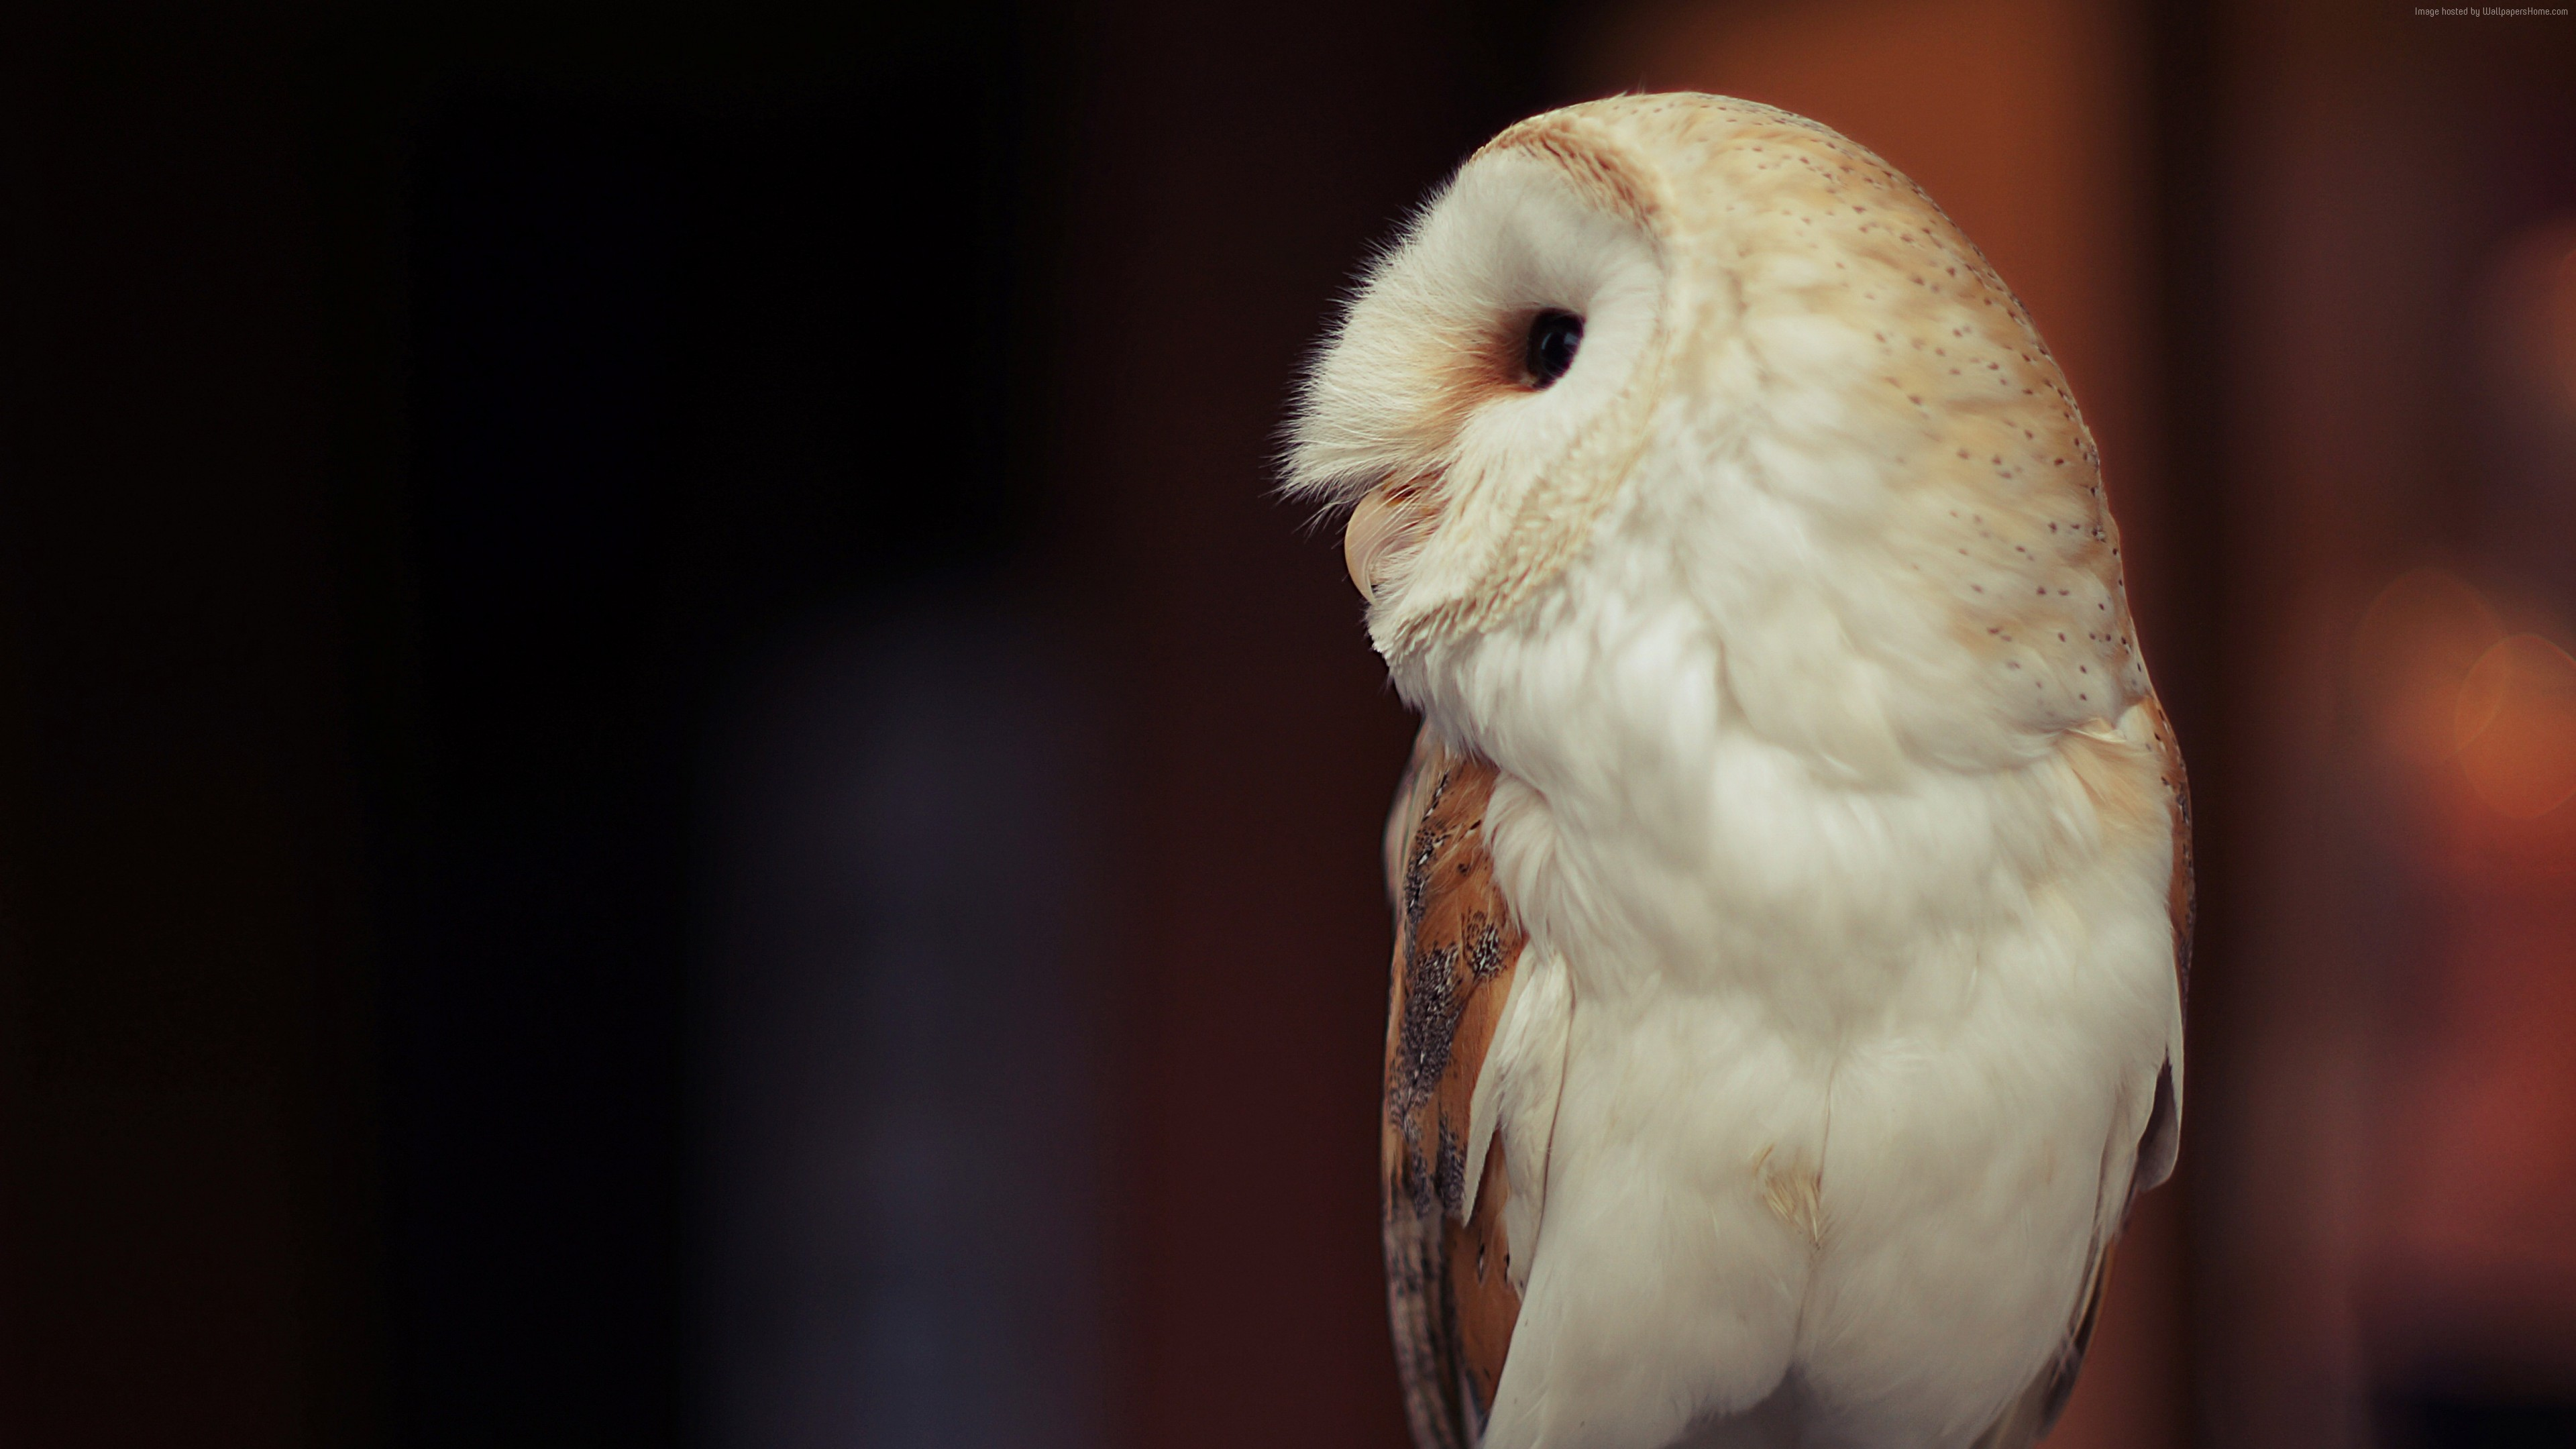 Wallpaper Owl, cute animals, funny, Animals